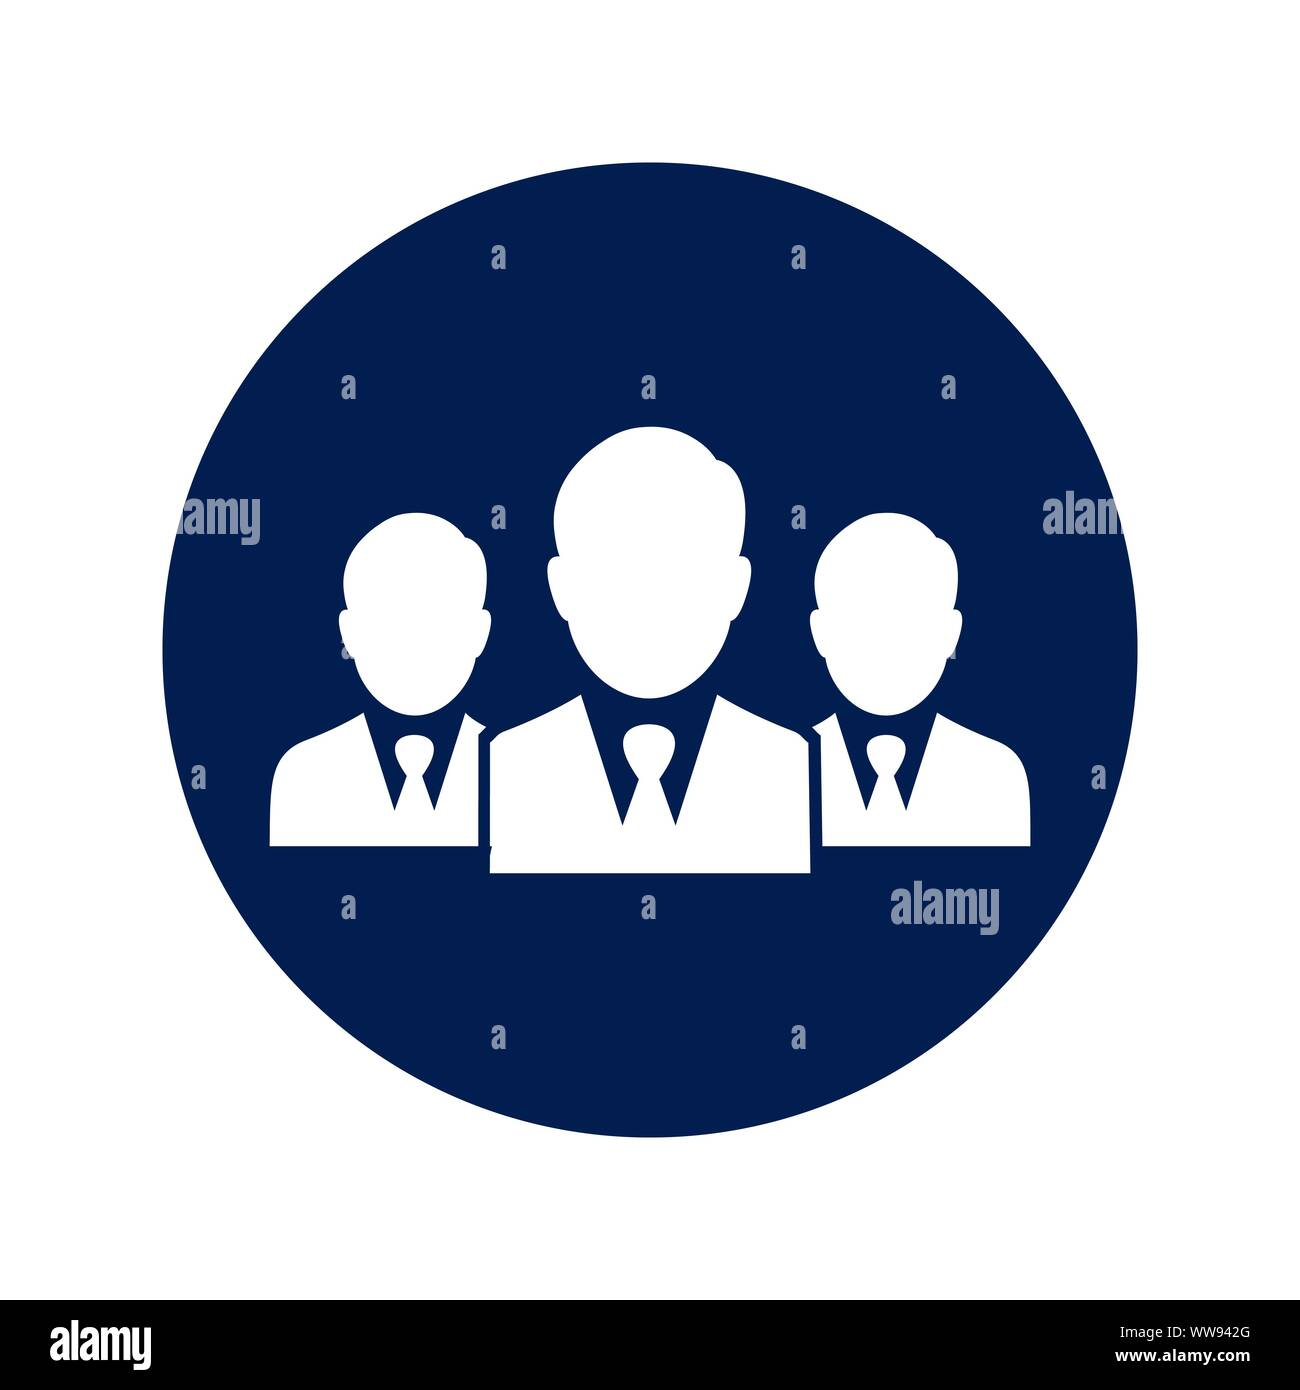 Business Team Leader Boss Leadership Icon Stock Vector Image Art Alamy